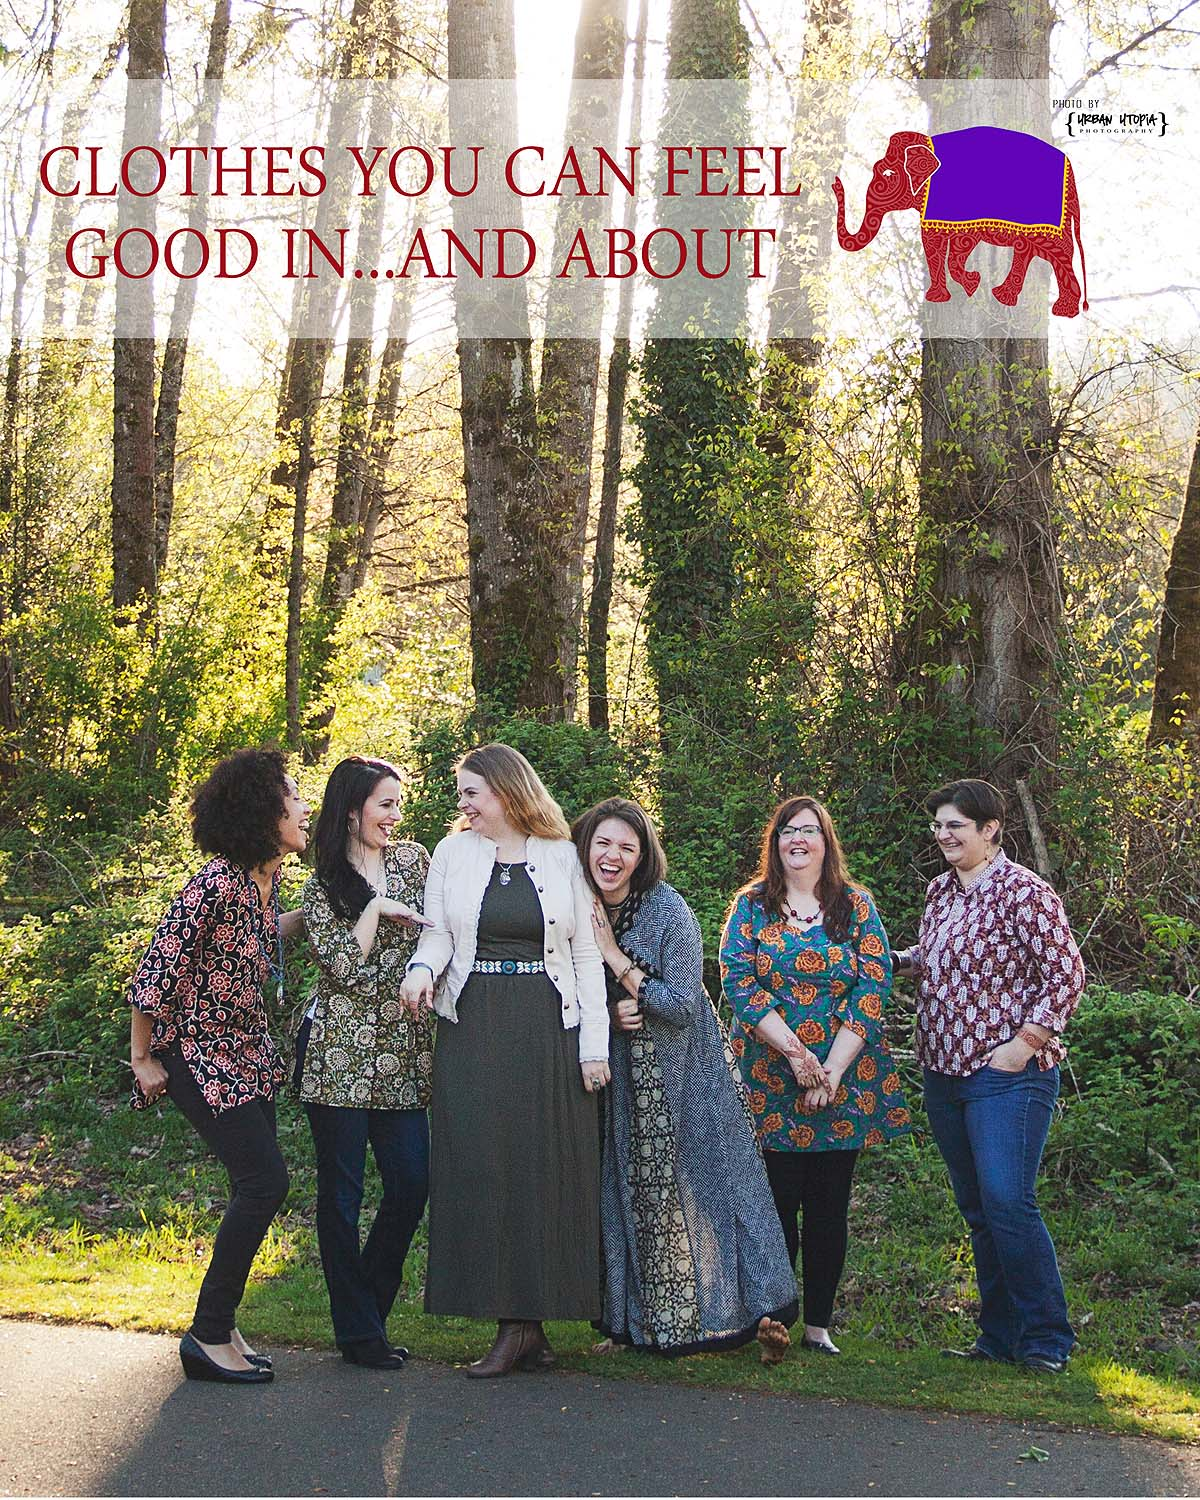 Group_feelgoodclothes